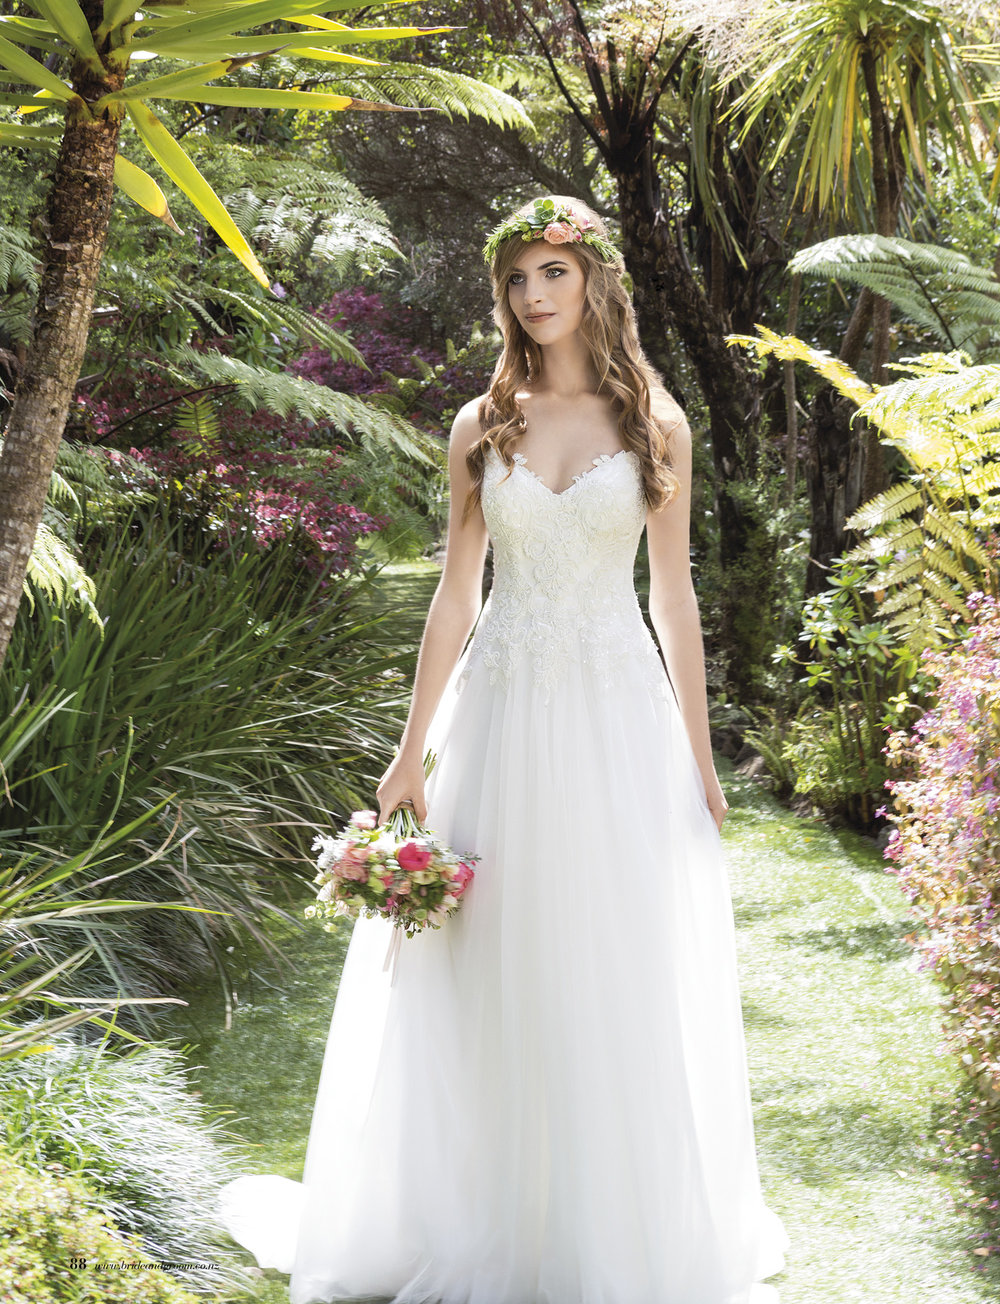 Marjorie from Rebecca Ingram | Issue 91 Bride and Groom Magazine | Available from Astra Bridal |